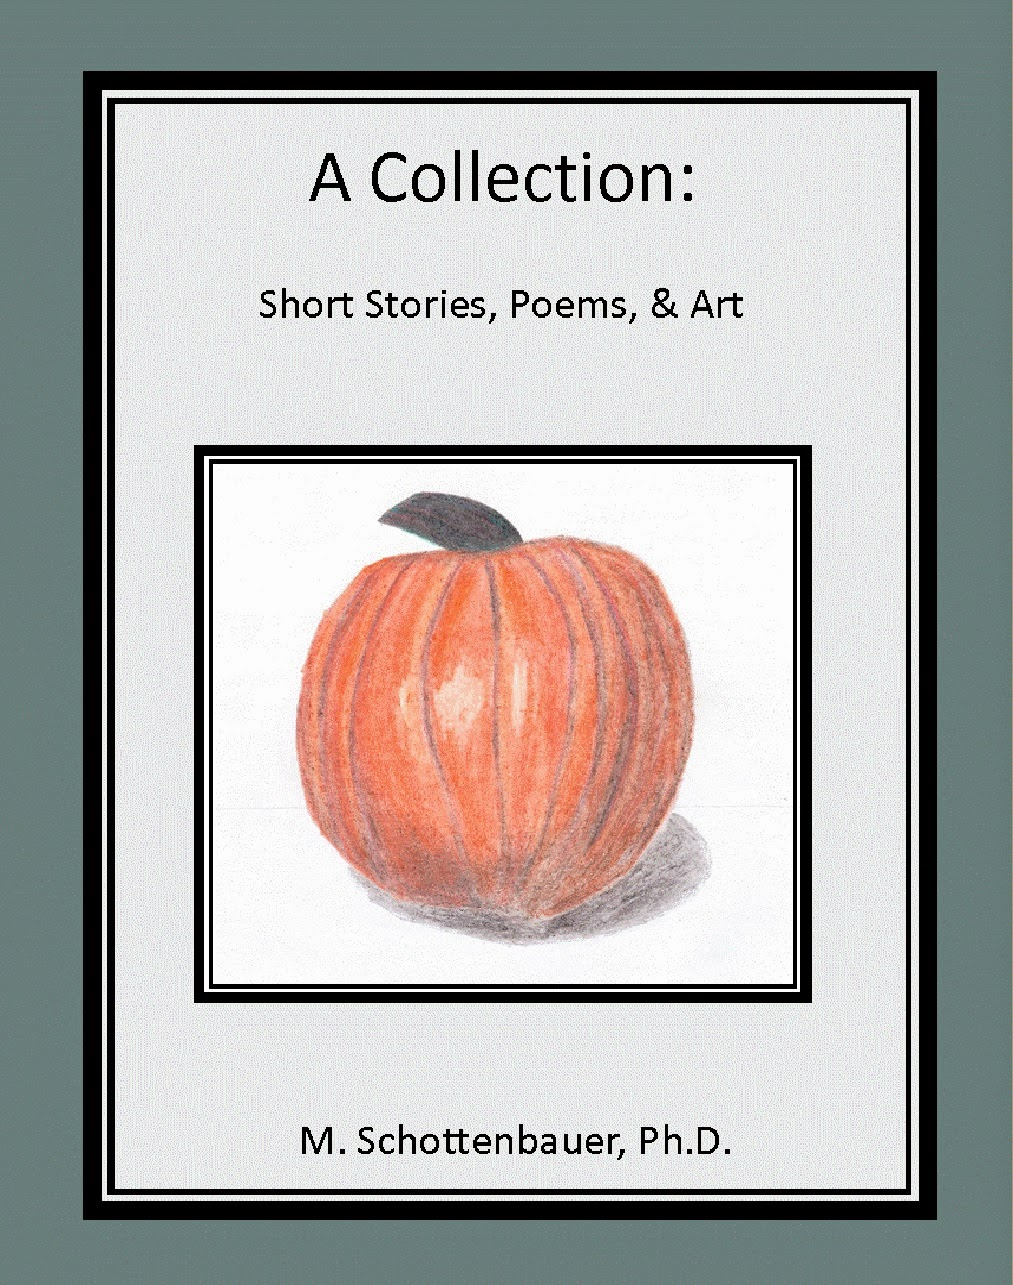 Short Stories & Poems